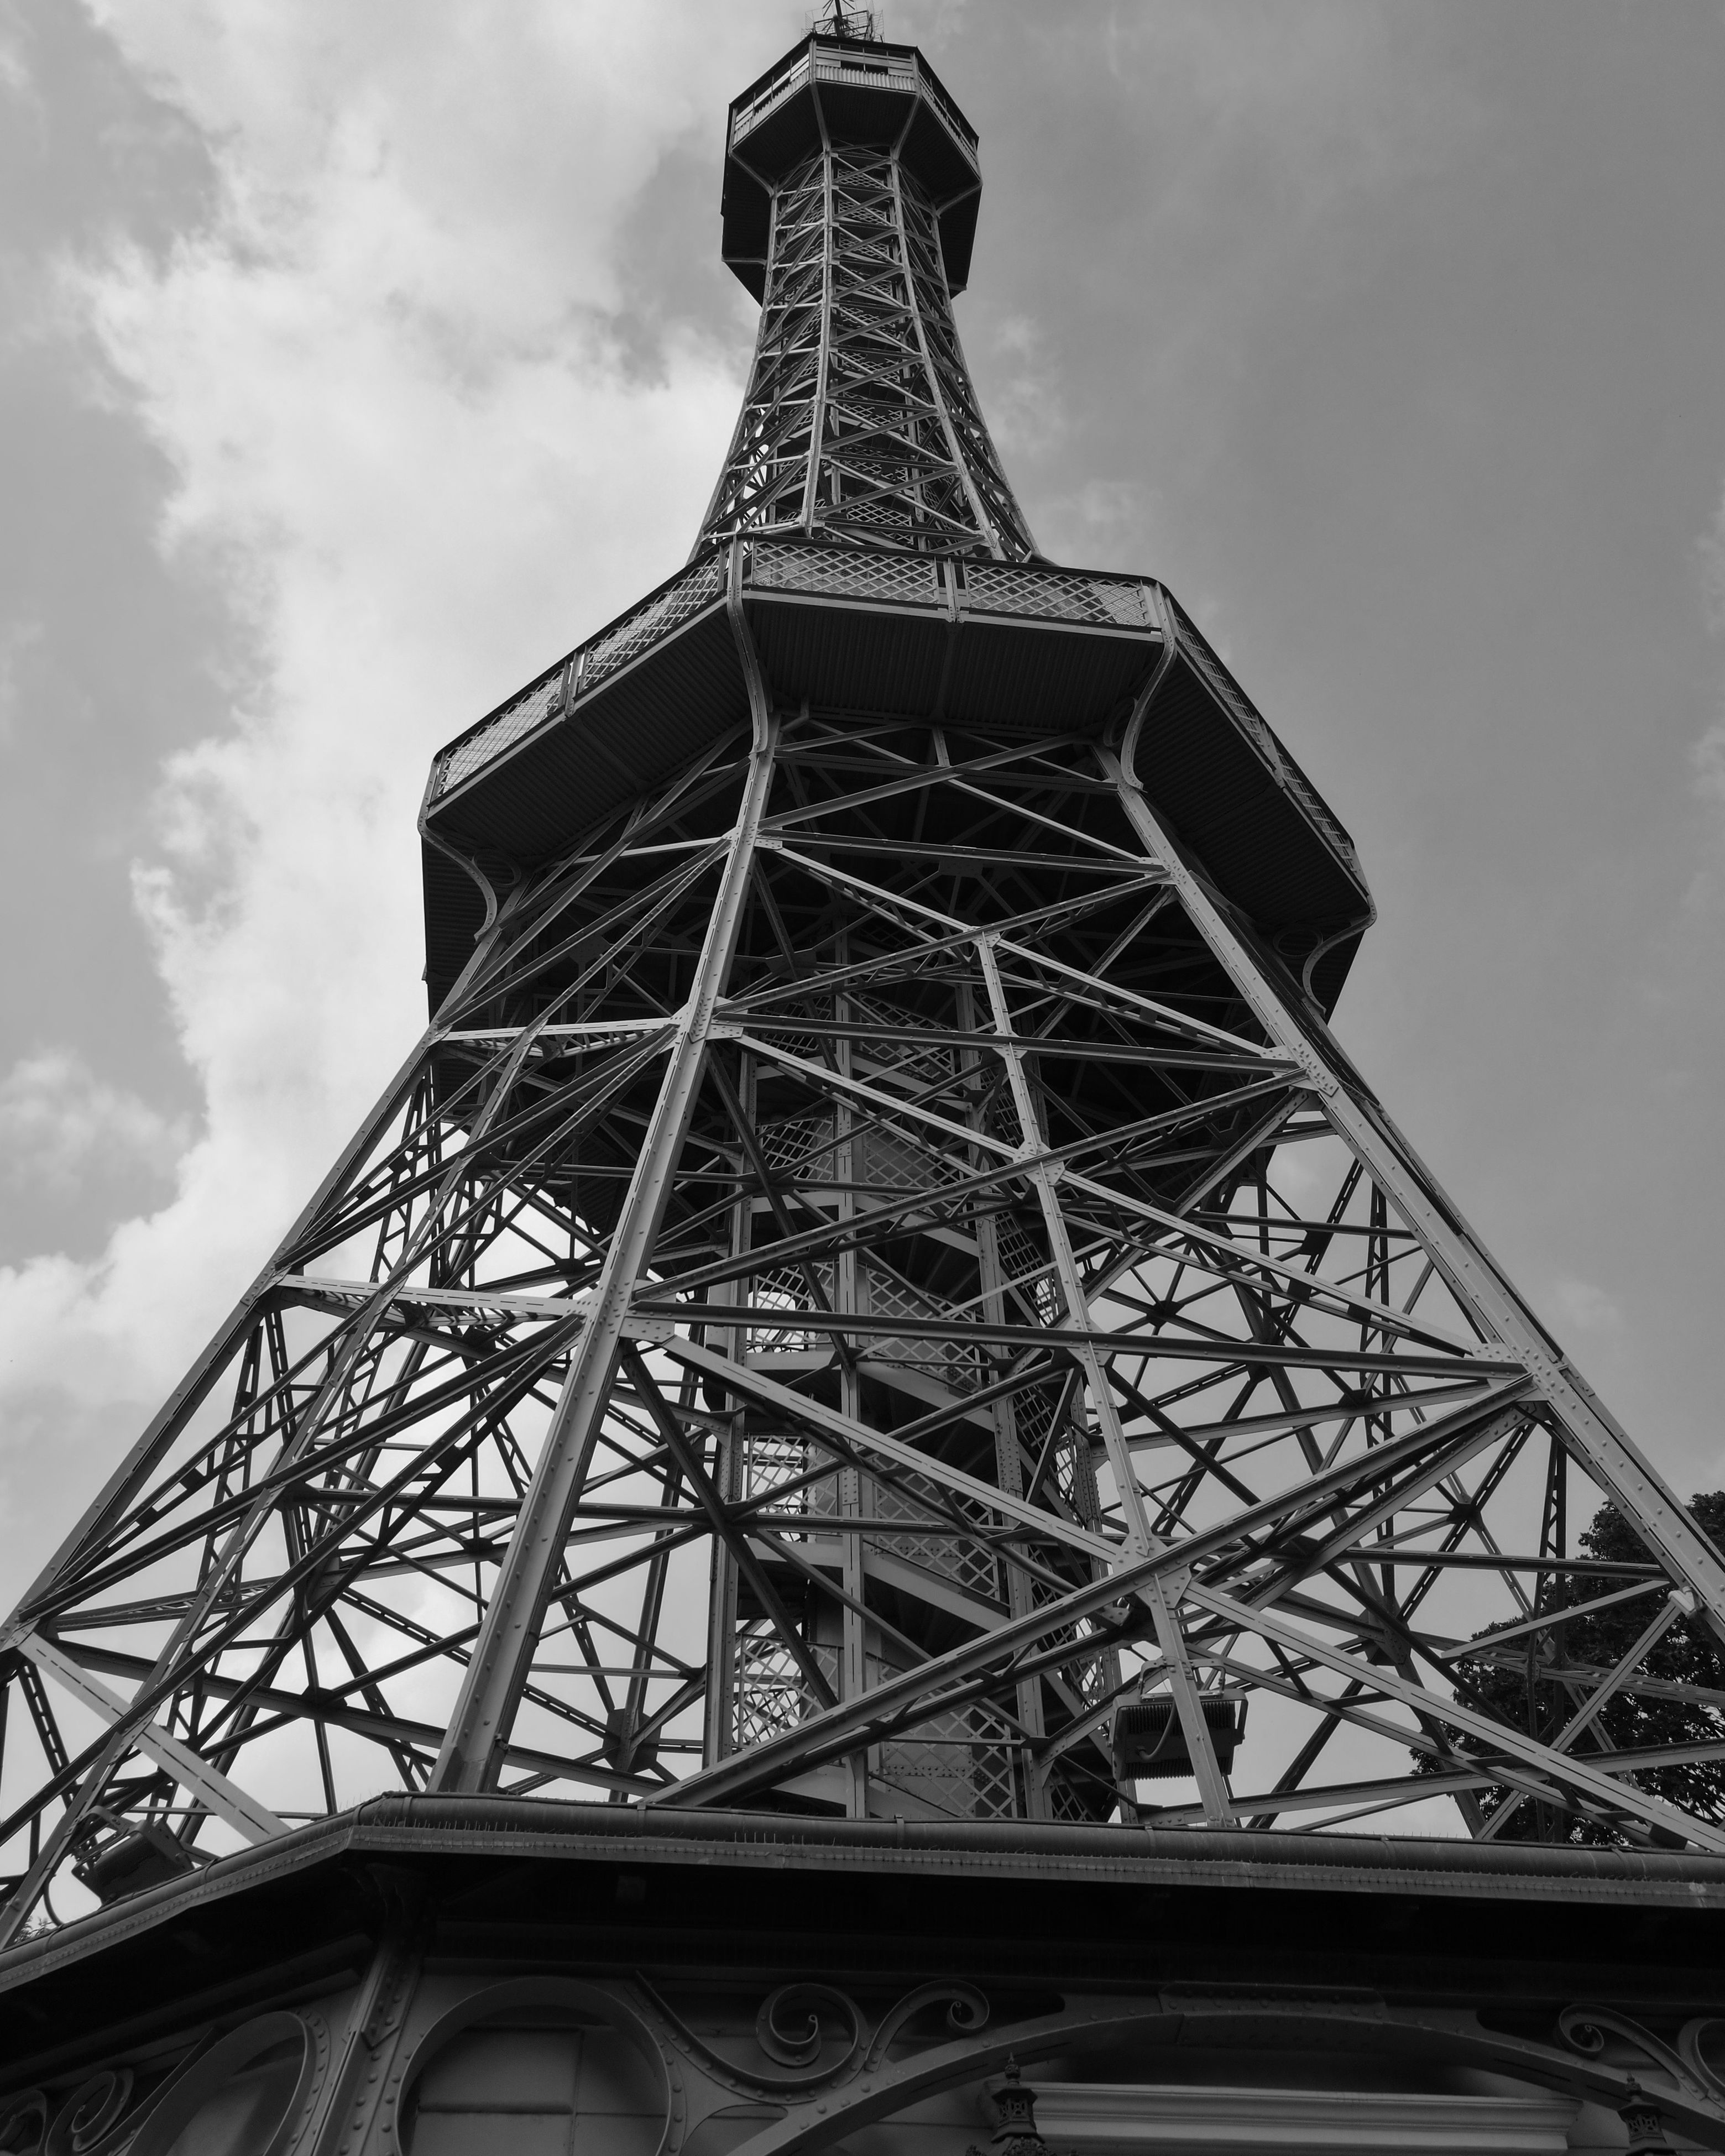 low angle view, built structure, tower, architecture, eiffel tower, international landmark, famous place, tall - high, sky, metal, travel destinations, tourism, tall, iron - metal, capital cities, culture, cloud, cloud - sky, history, architectural feature, day, outdoors, monument, no people